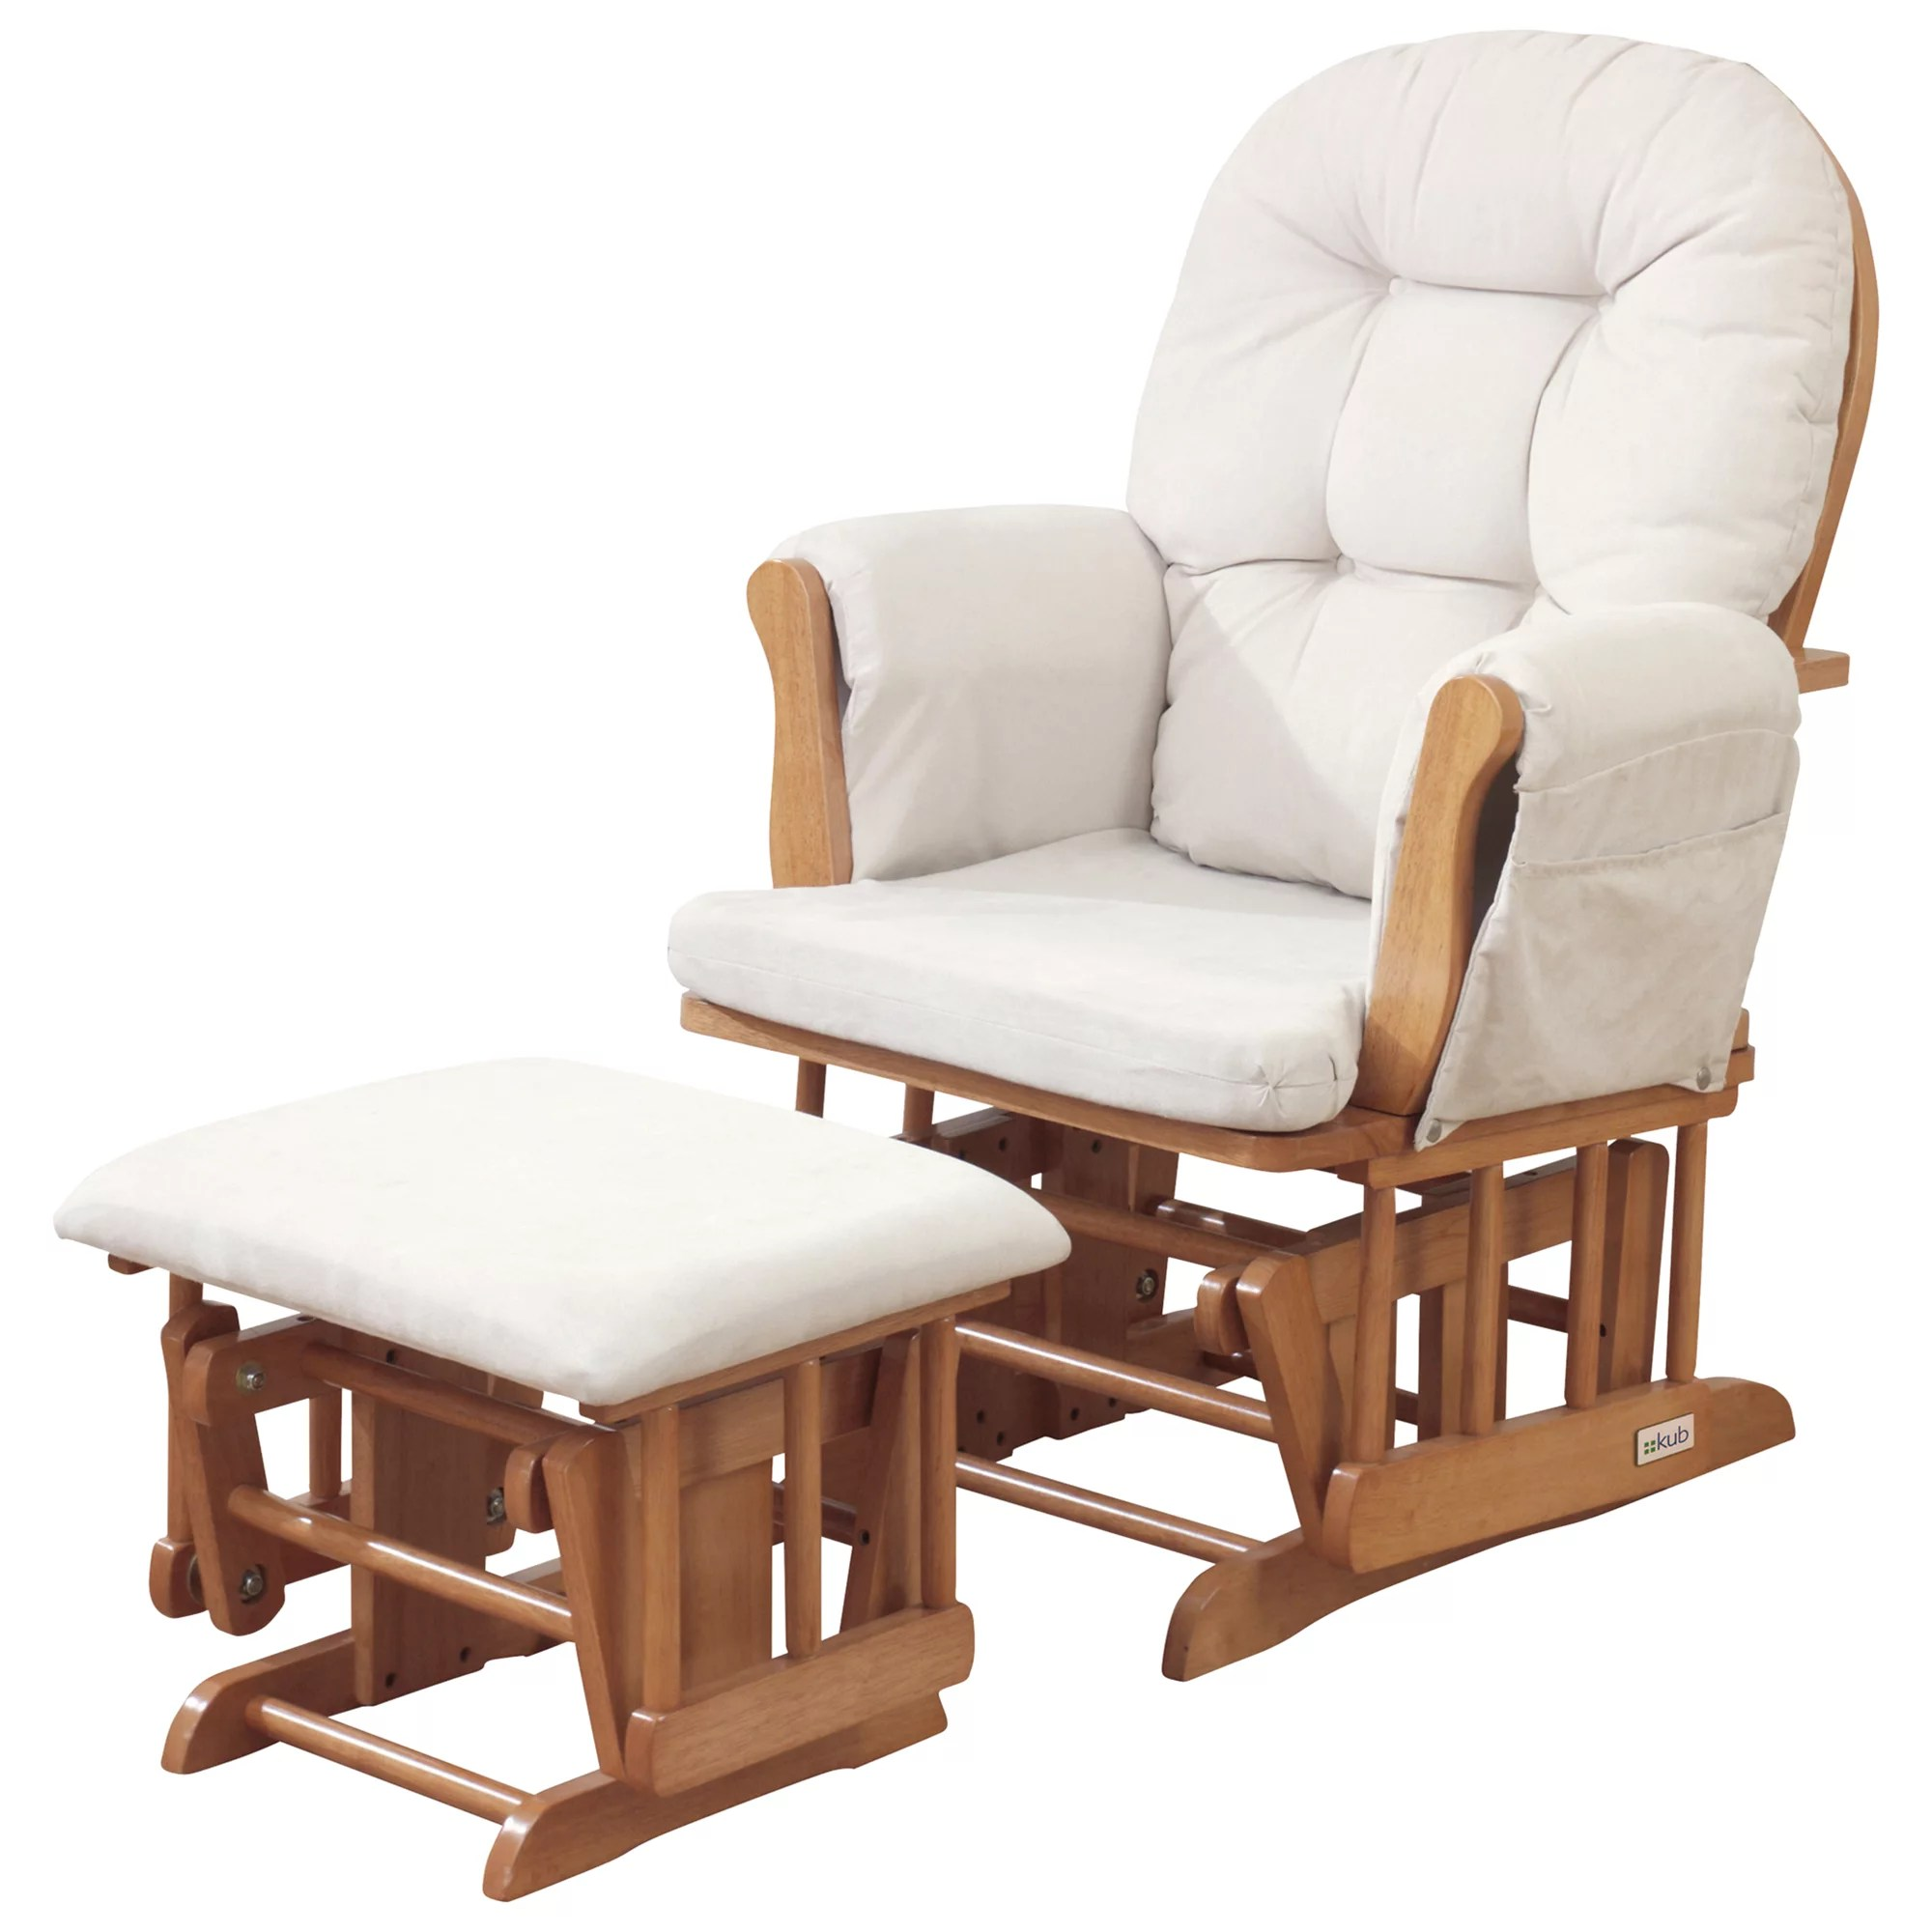 Baby Nursing Chair Kub Haywood Glider Nursing Chair And Footstool Natural At